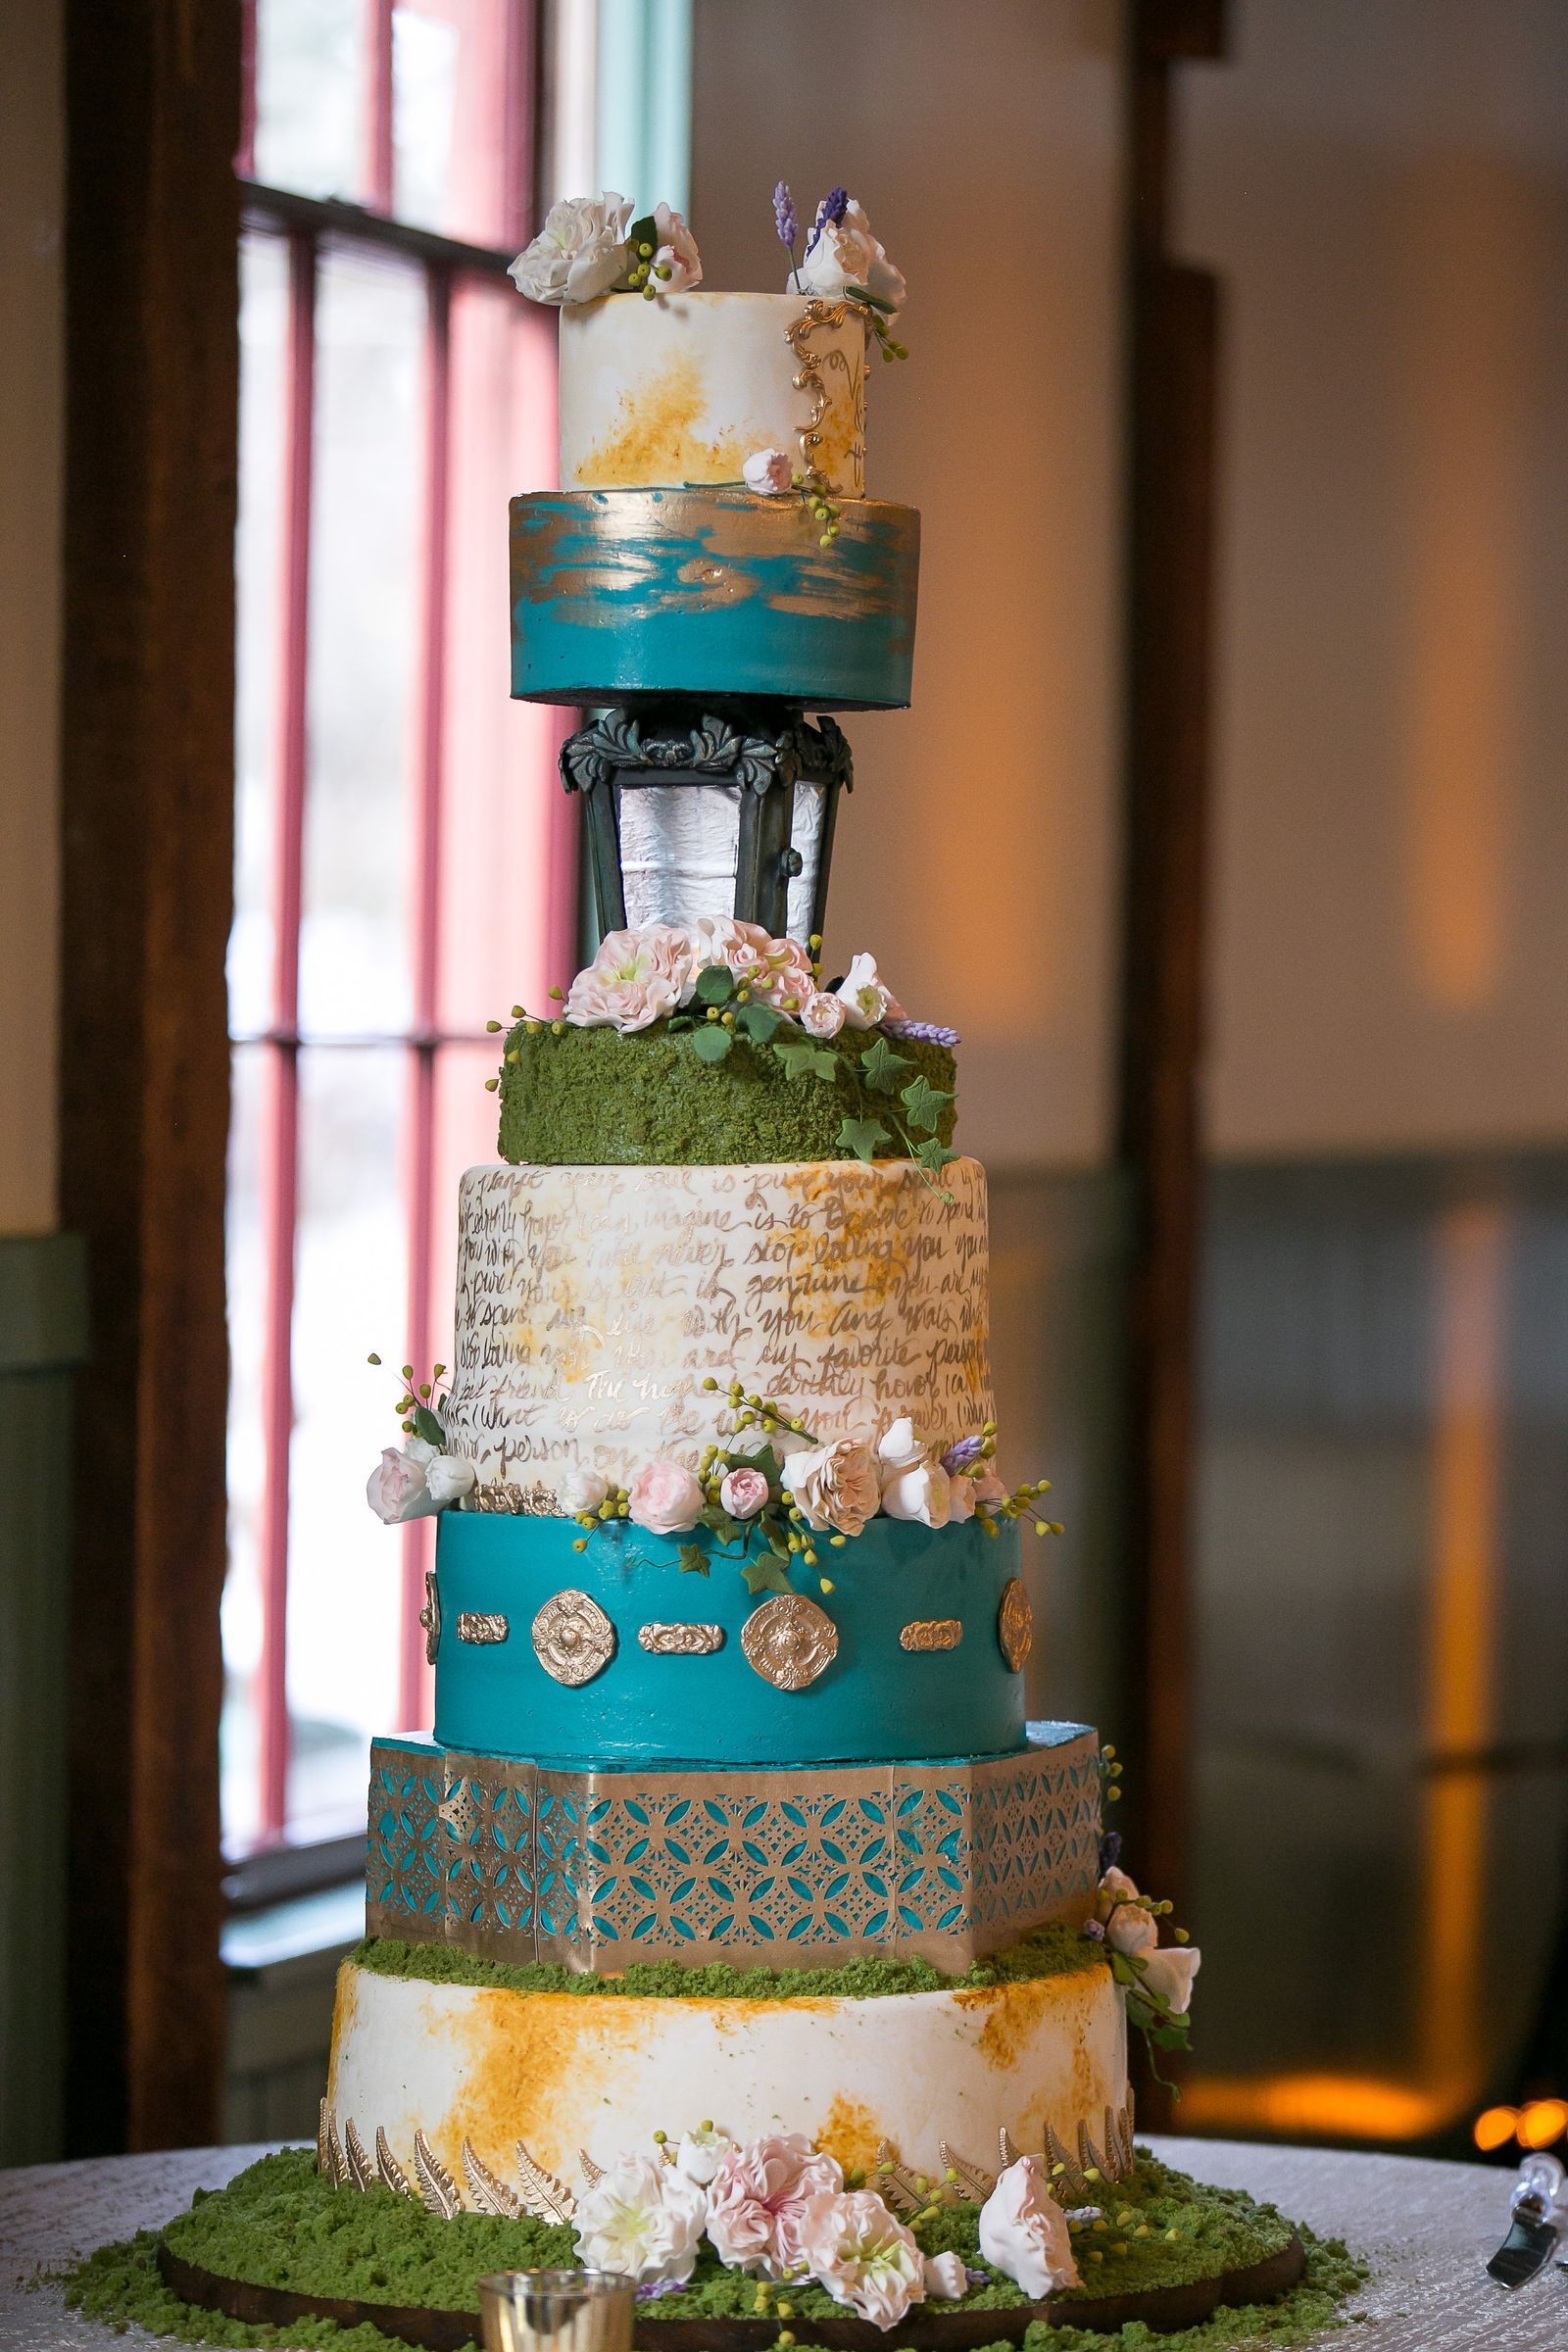 The Most Spectacular Wedding Bakeries Near You In 2020 Wedding Bakery Wedding Cake Bakery Wedding Cakes